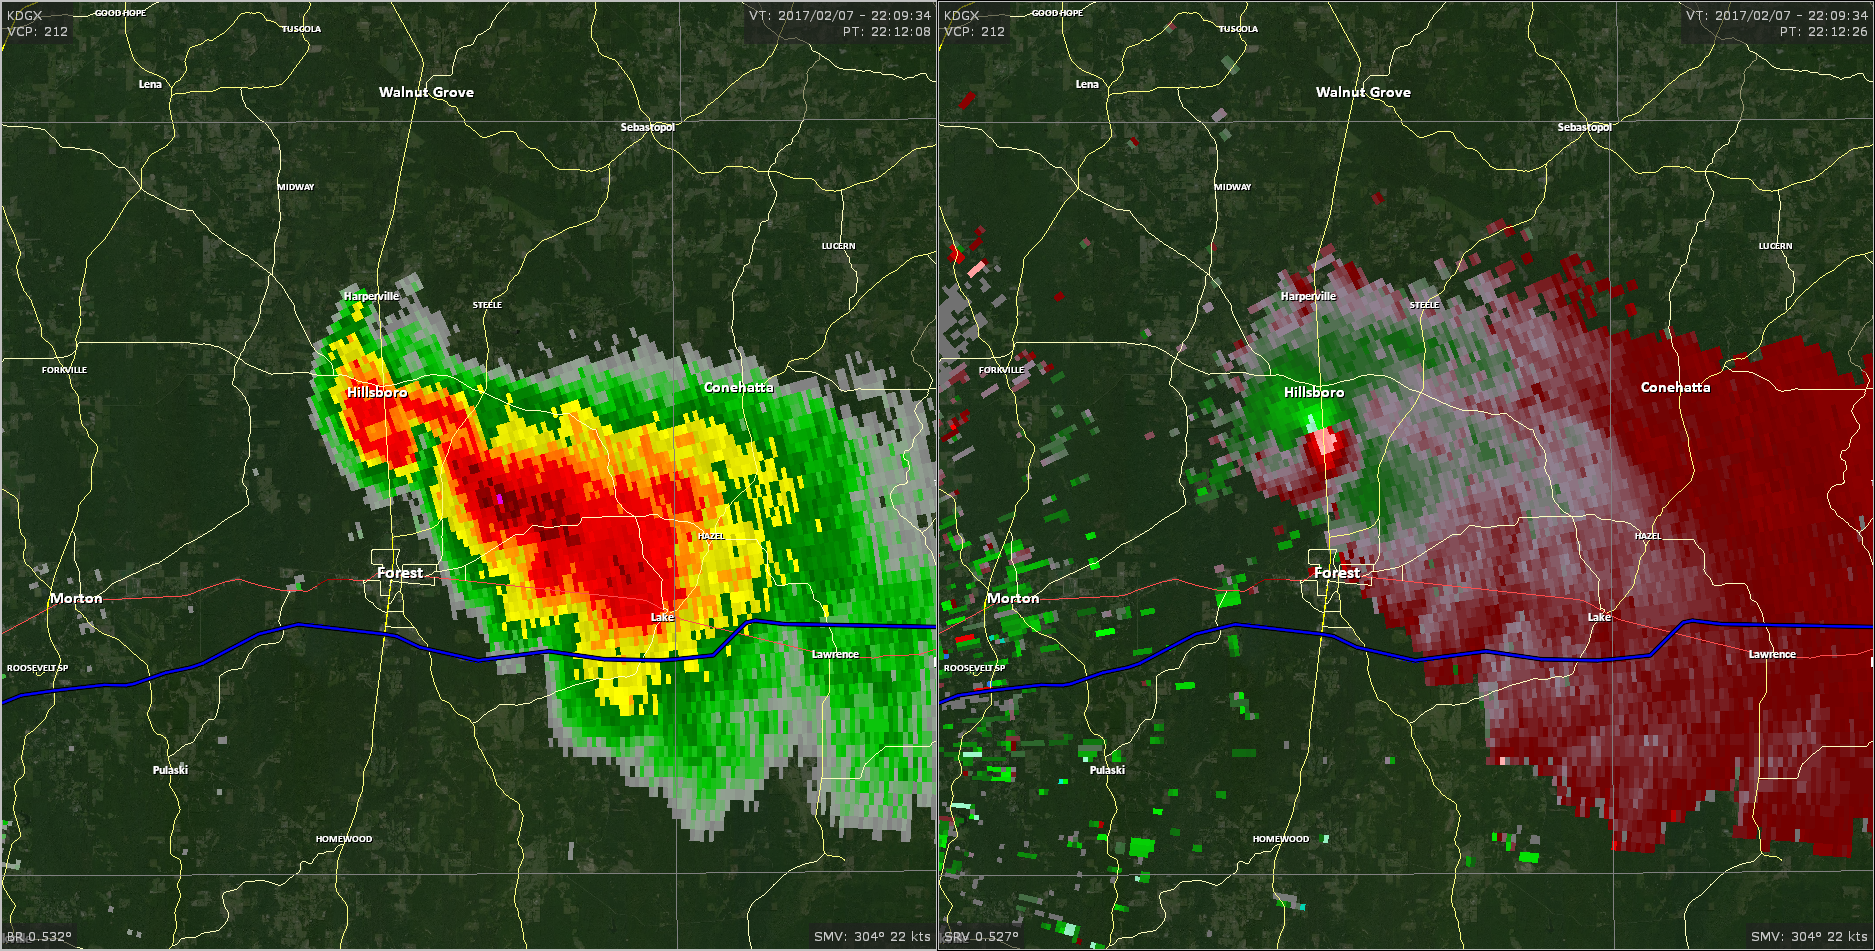 Radar - Scott County Tornado